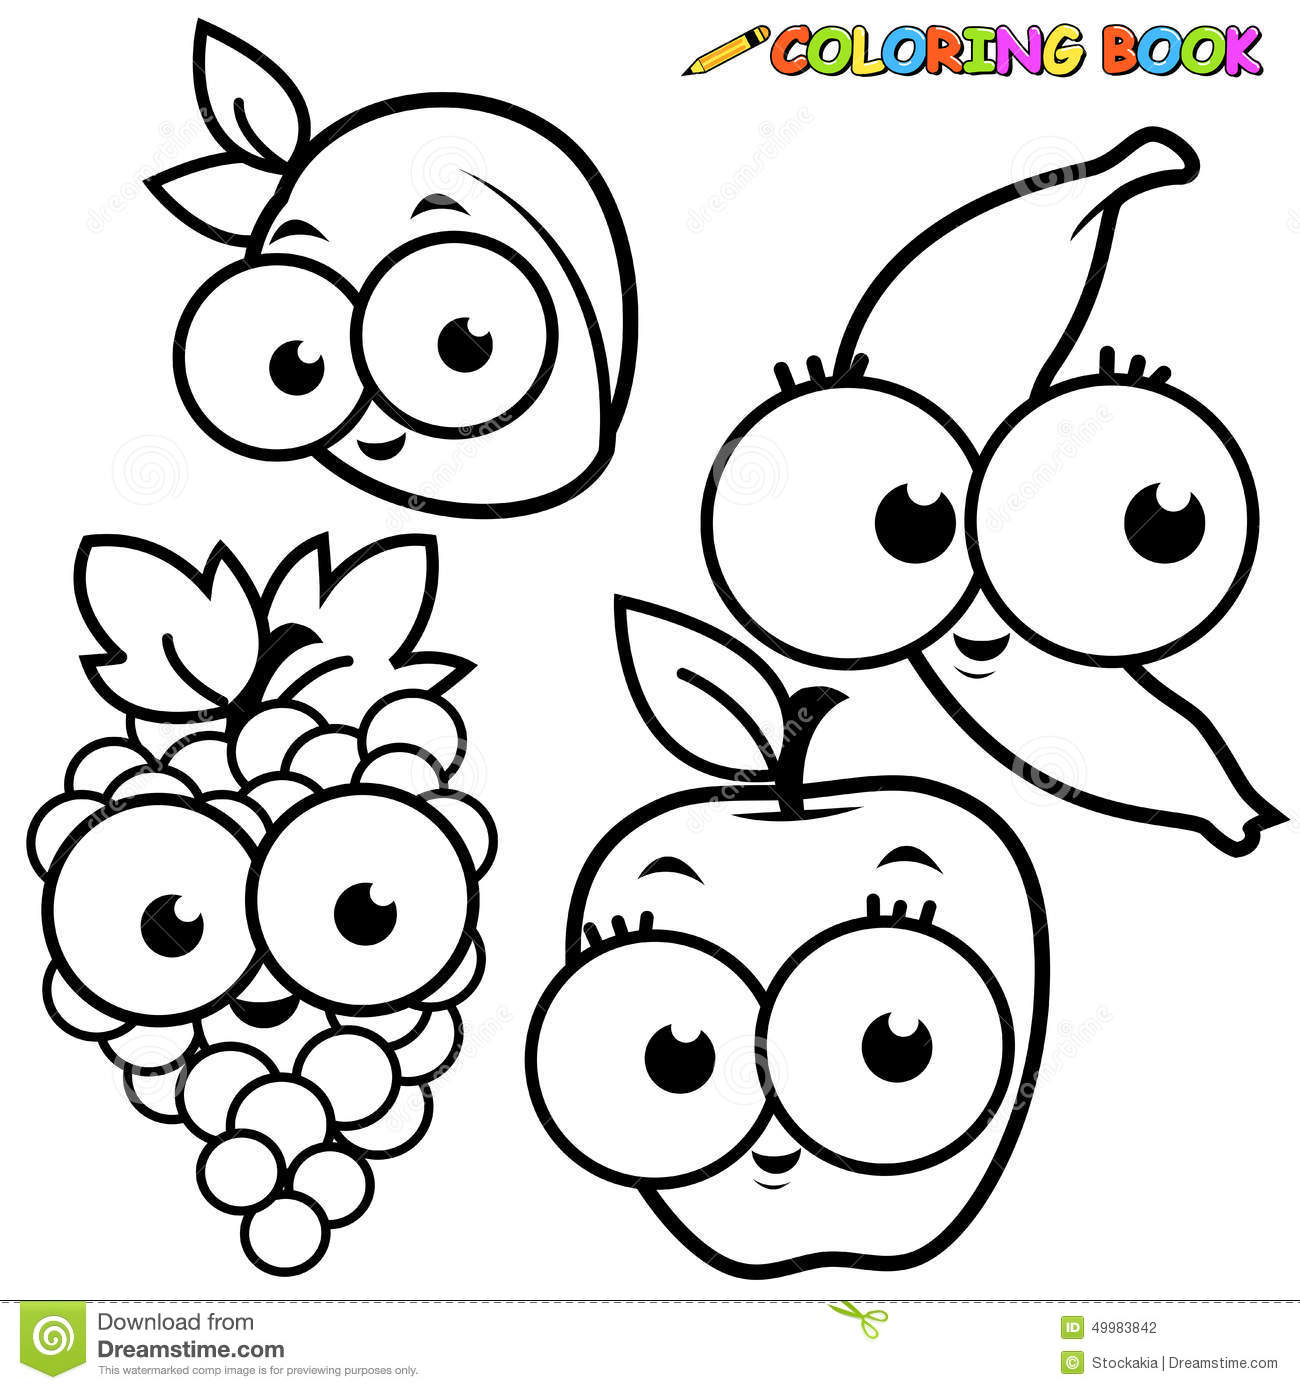 66 Coloring Book Apple Music Free Images